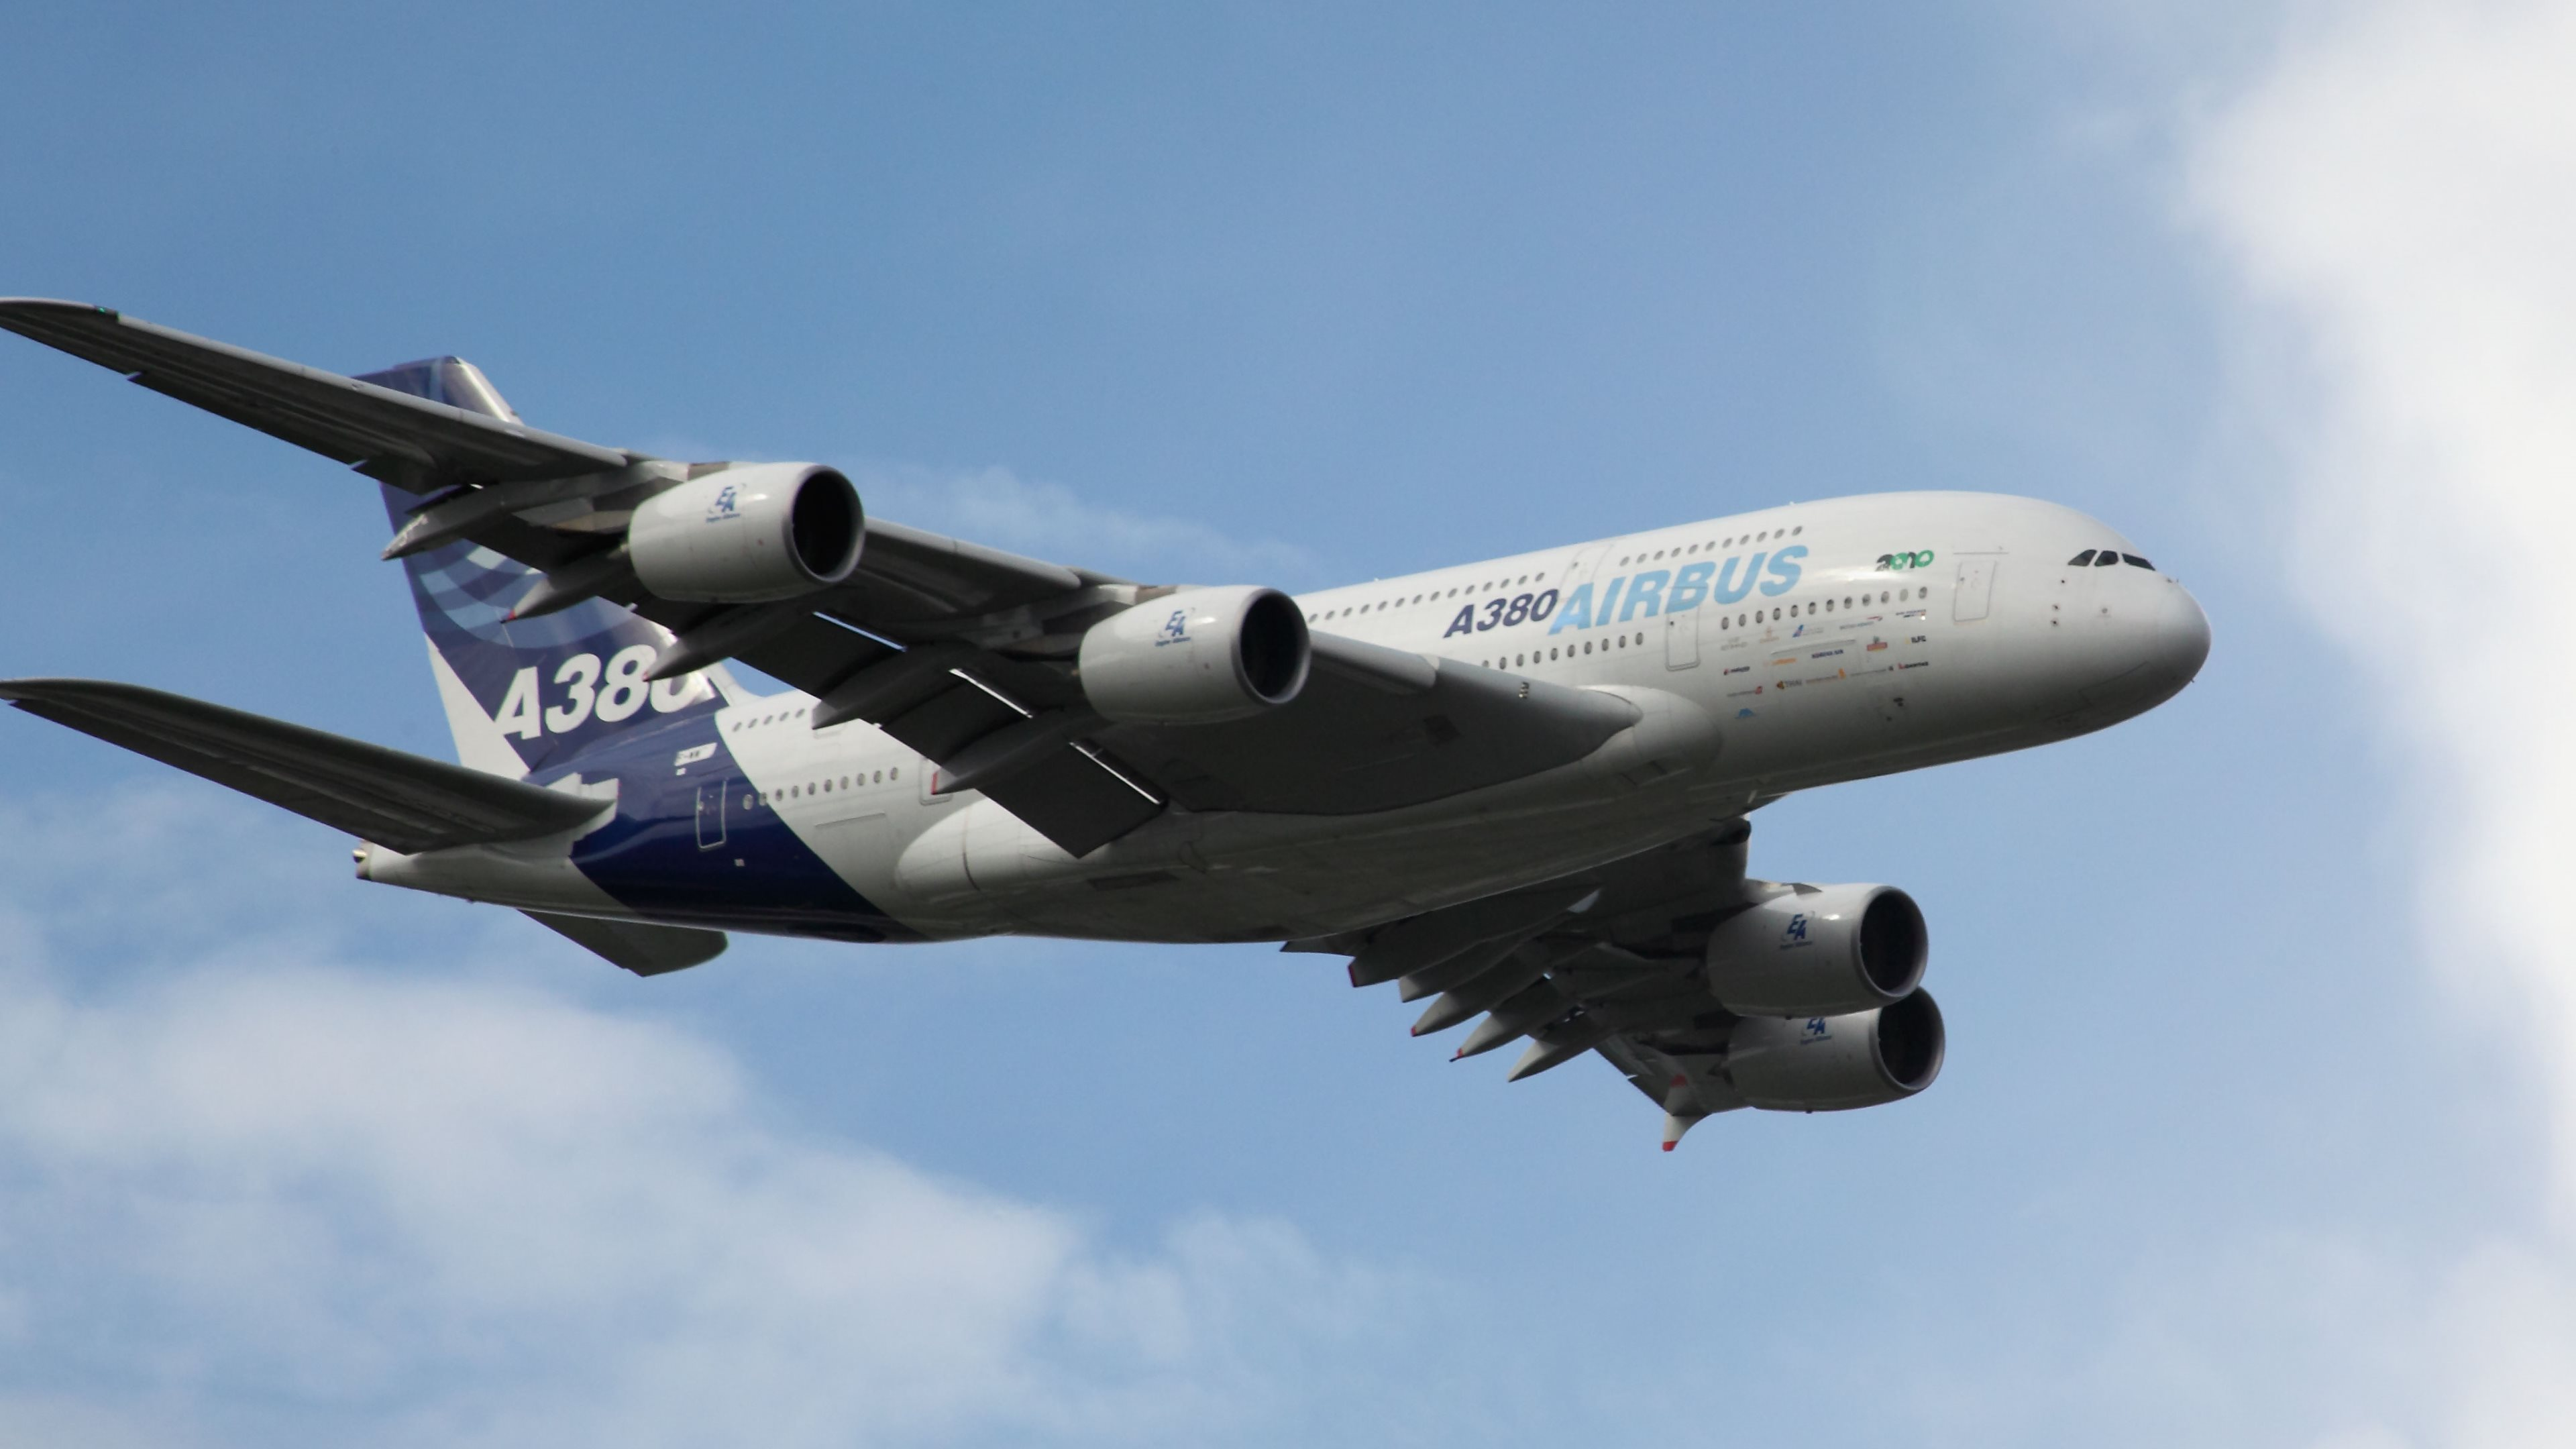 Airbus a380 airshow wallpapers in hd 4k and wide sizes